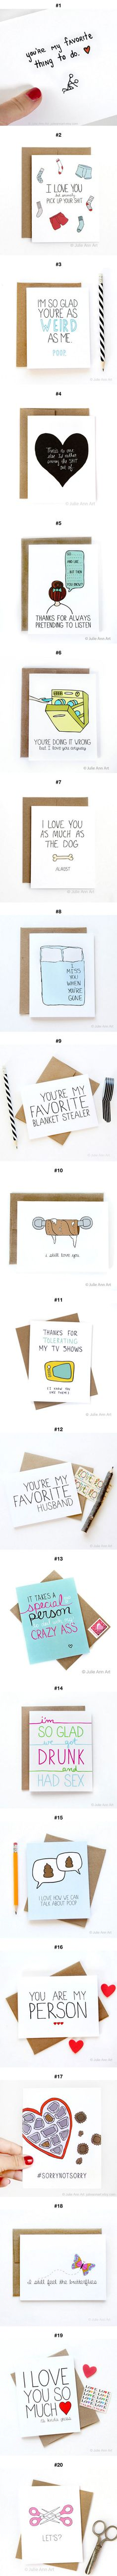 """Honest Valentine Cards For You If You Are Tired Of """"Romantic"""" Ones (By Julie Ann)"""